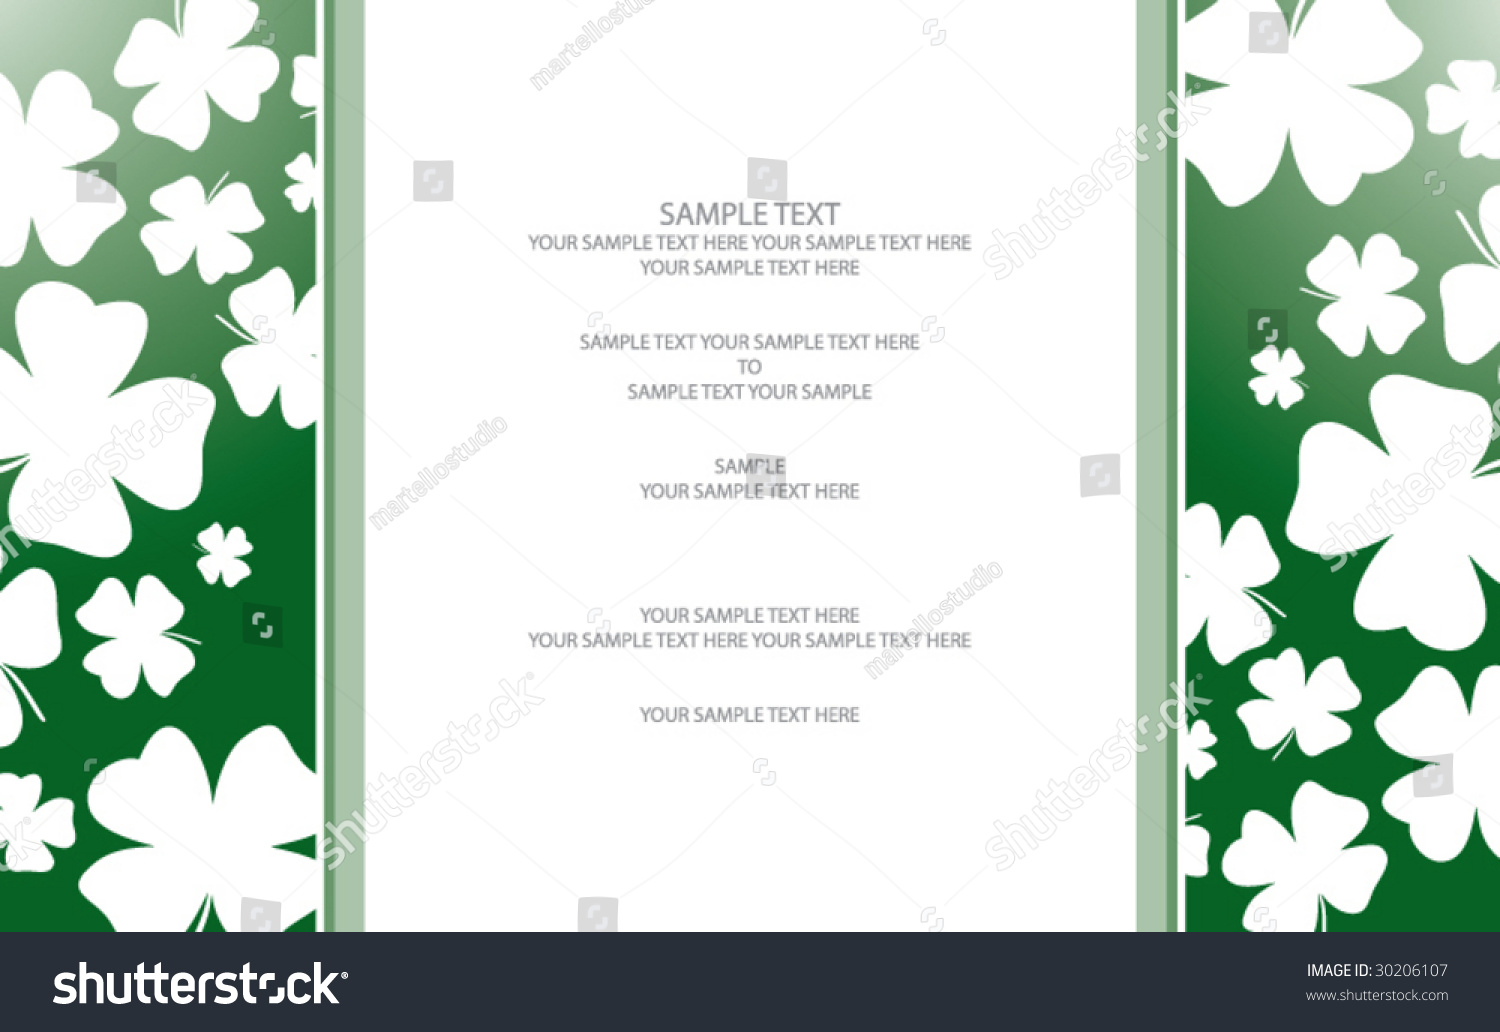 Famous 1 Inch Circle Template Thin 1 Round Label Template Regular 1.5 Inch Hexagon Template 10 Off Coupon Template Youthful 12 Team Schedule Template Bright15 Year Old Resume Template Four Leaf Clover Card Invitation Template Stock Vector 30206107 ..